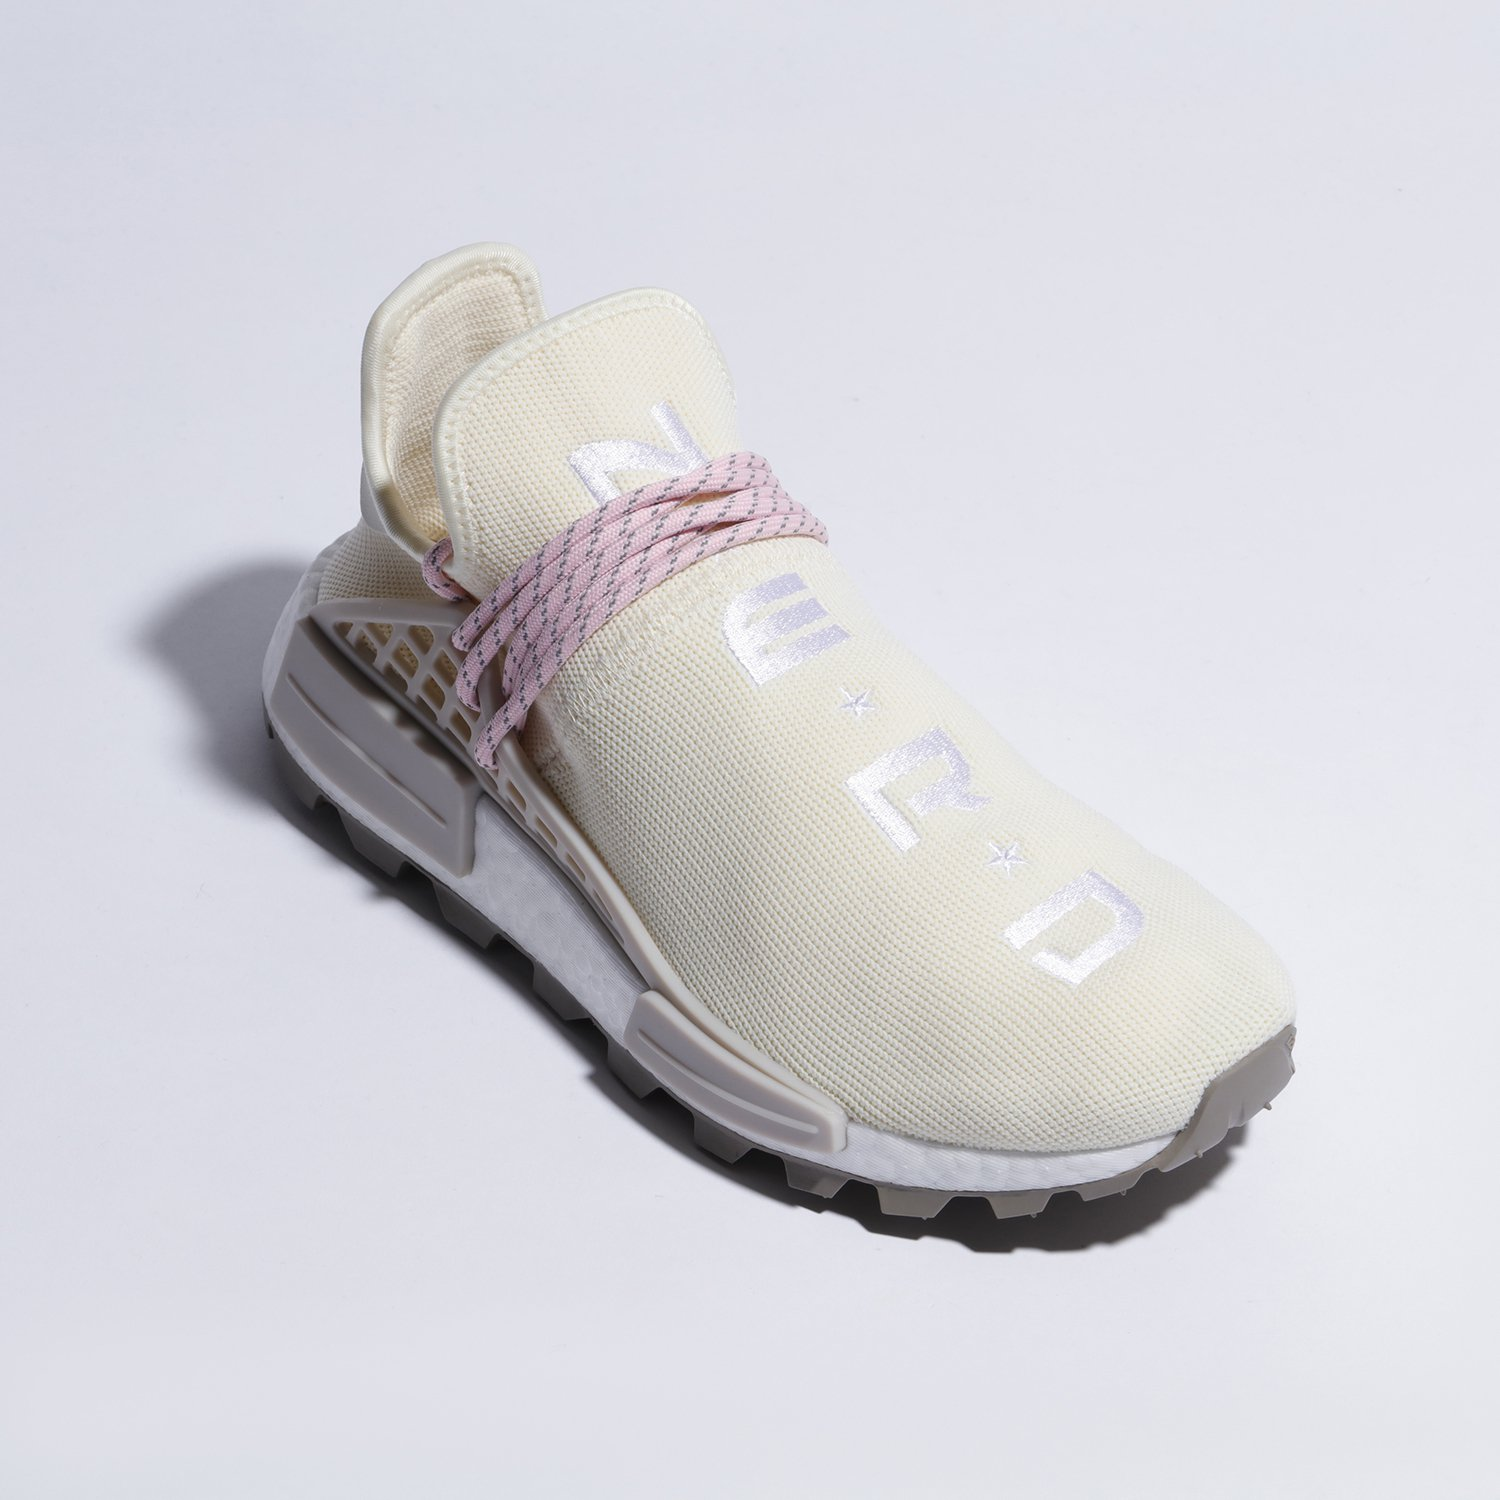 pharrell-williams-adidas-pw-hu-nmd-nerd-ee8102-release-20180804